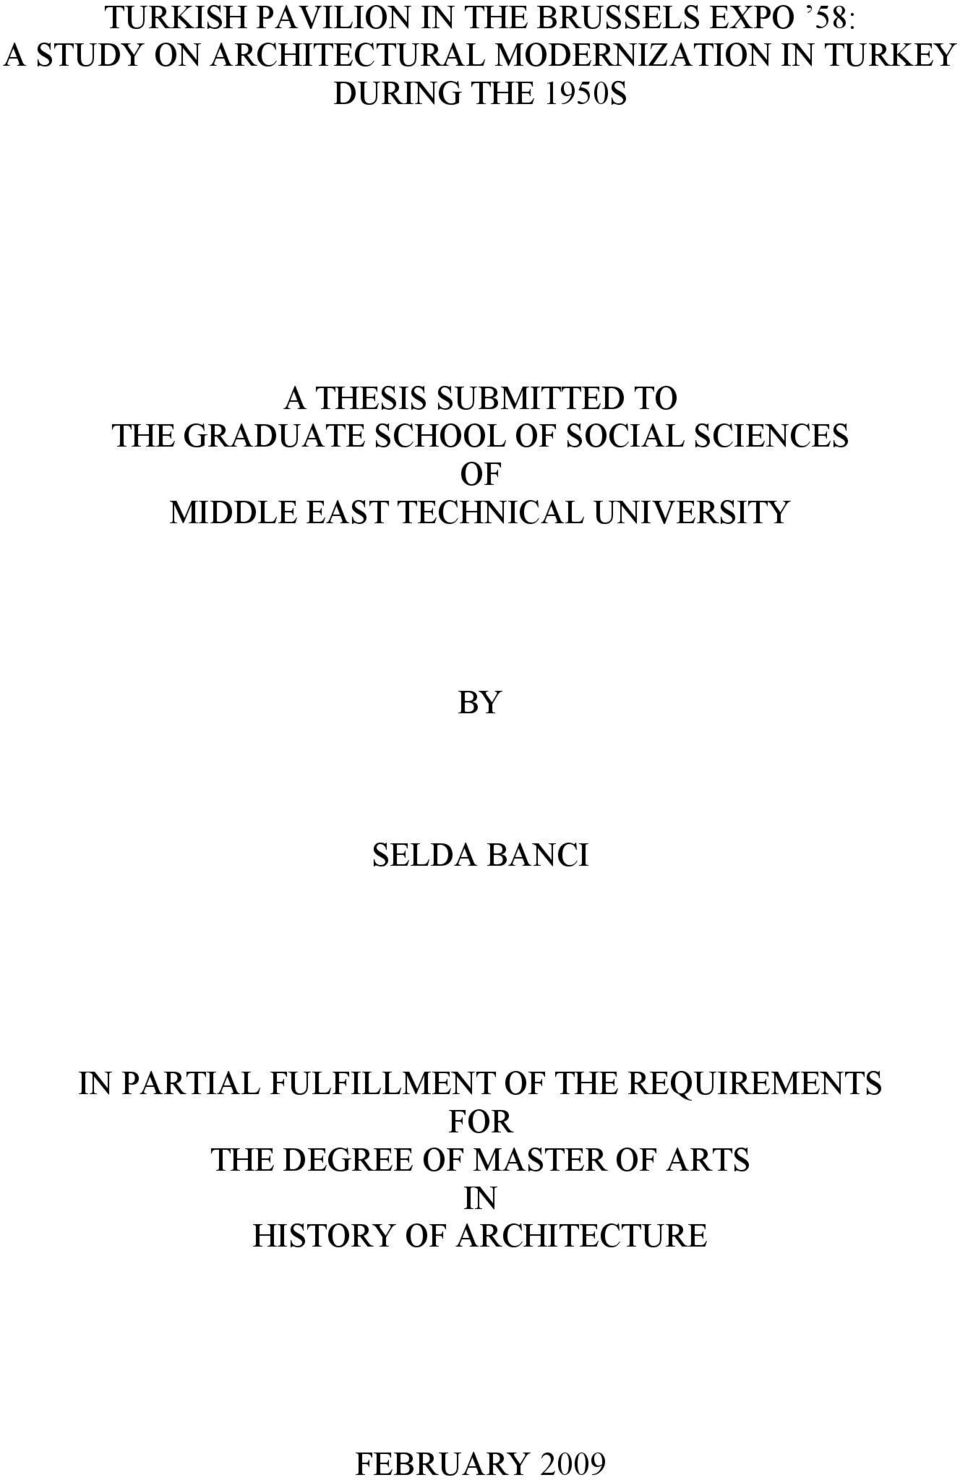 SCIENCES OF MIDDLE EAST TECHNICAL UNIVERSITY BY SELDA BANCI IN PARTIAL FULFILLMENT